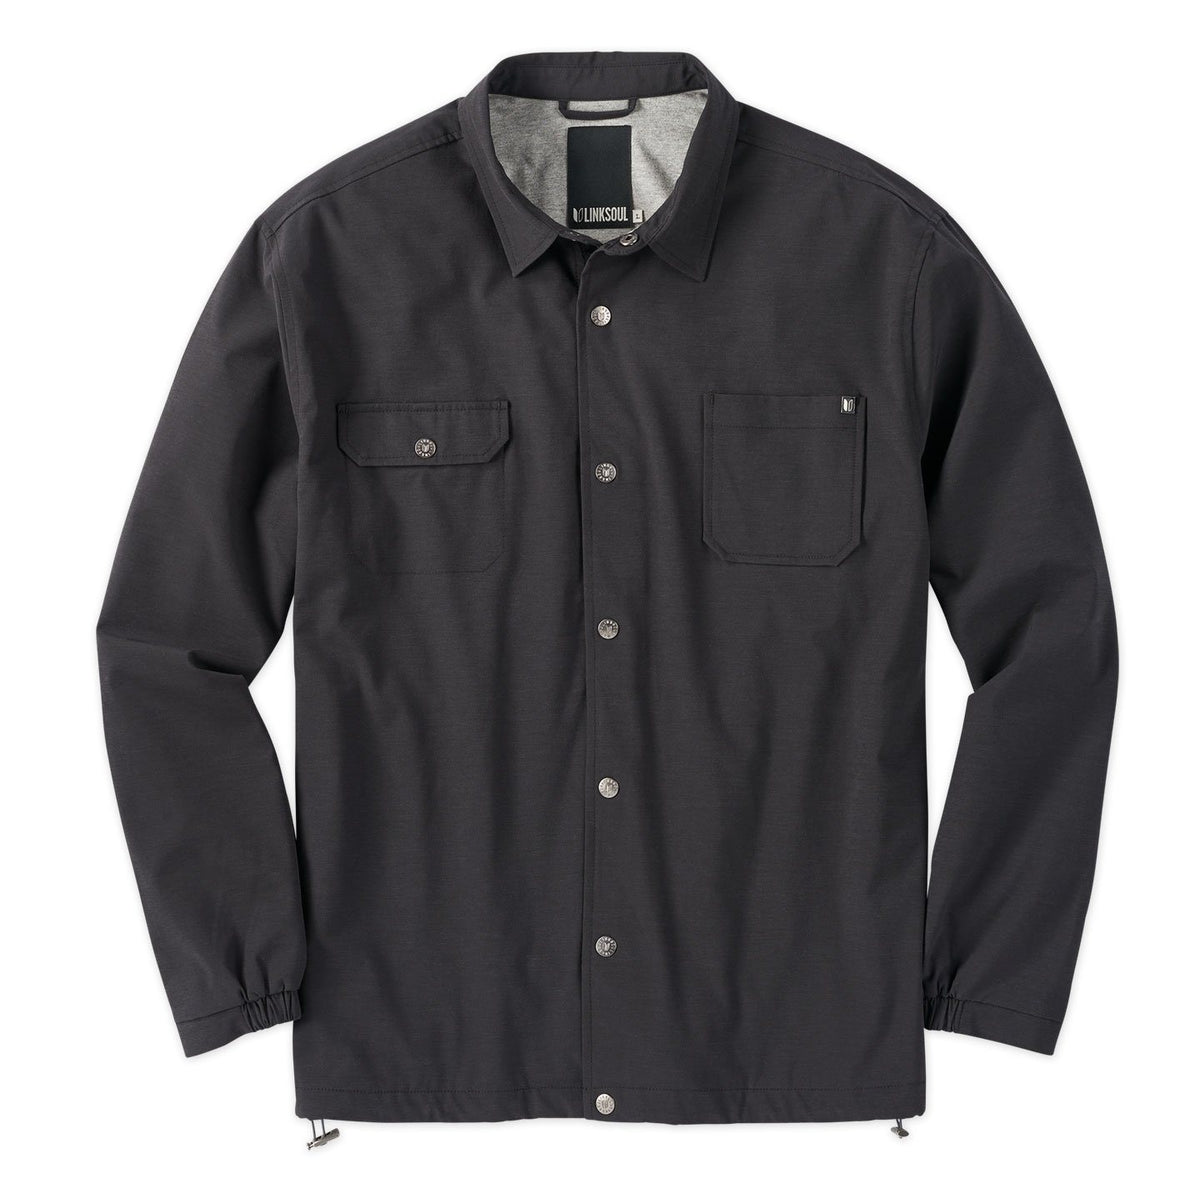 Stonington Long Sleeve Shirt